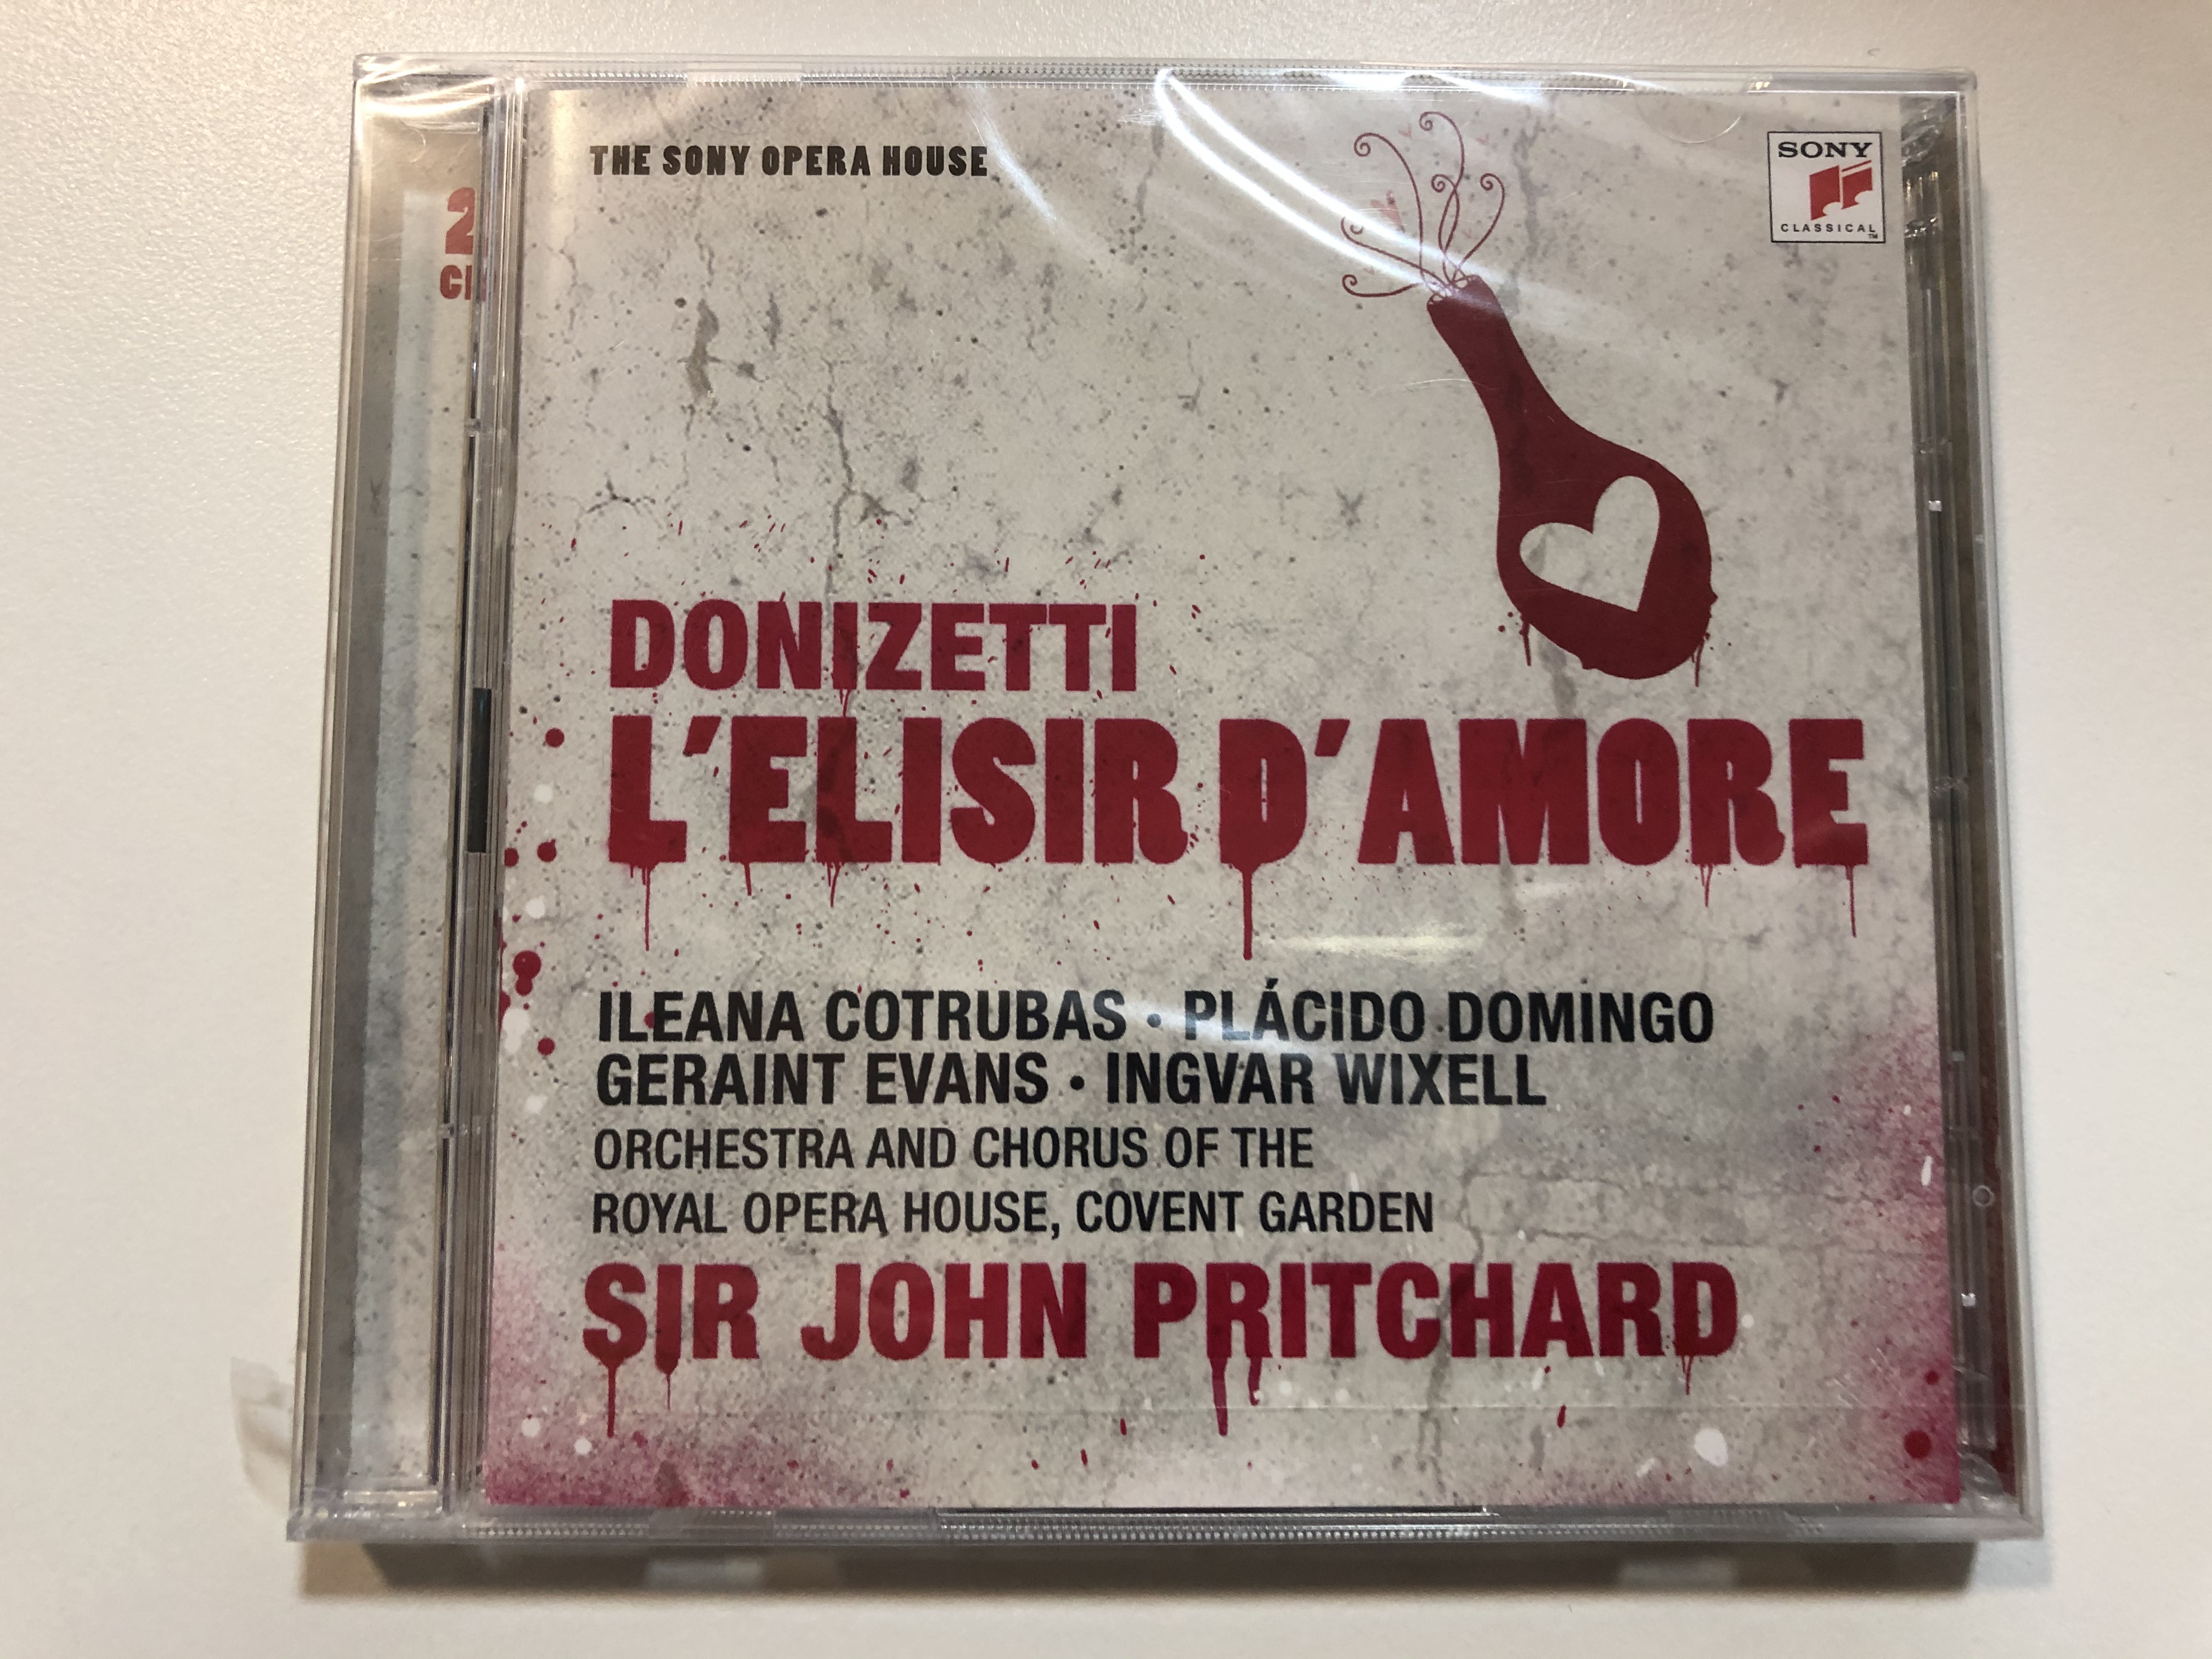 donizetti-l-elisir-d-amore-ileana-cotrubas-placido-domingo-geraint-evans-ingvar-wixell-orchestra-and-chorus-of-the-royal-opera-house-covent-garden-sir-john-pritchard-sony-music-2x-au-1-.jpg